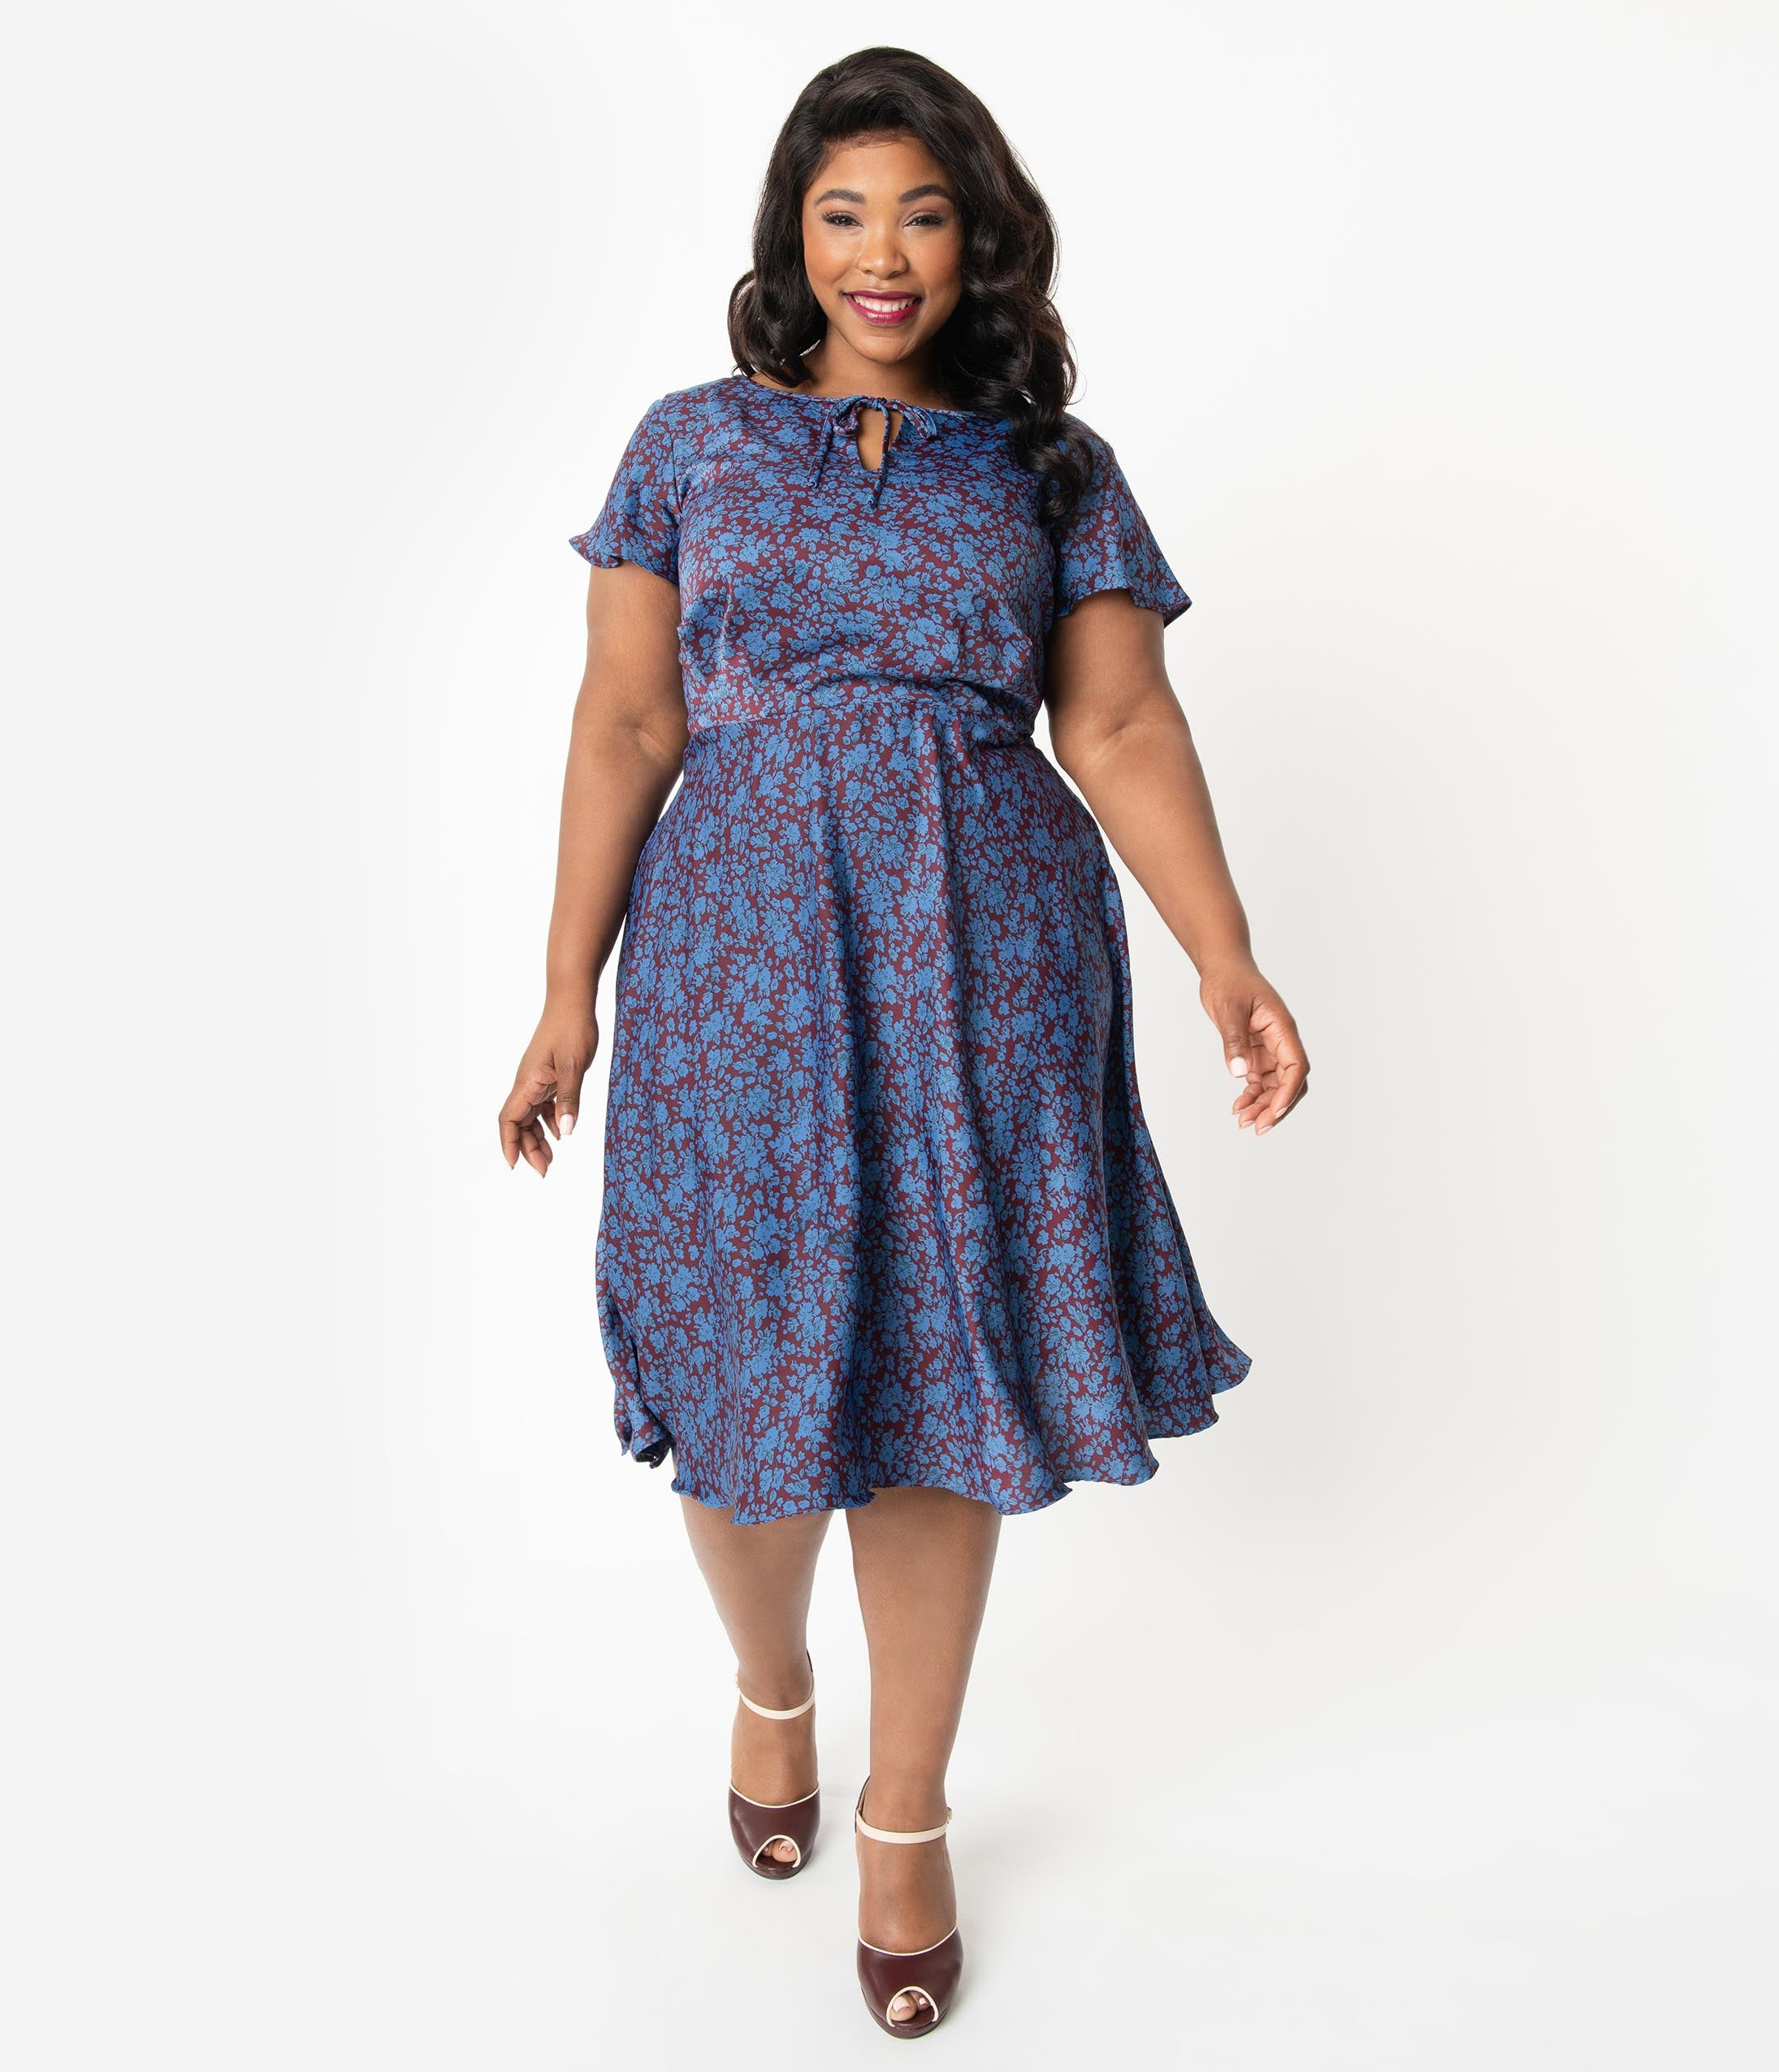 1940s Plus Size Dresses | Swing Dress, Tea Dress Unique Vintage Plus Size 1940S Style Maroon  Blue Floral Formosa Swing Dress $78.00 AT vintagedancer.com